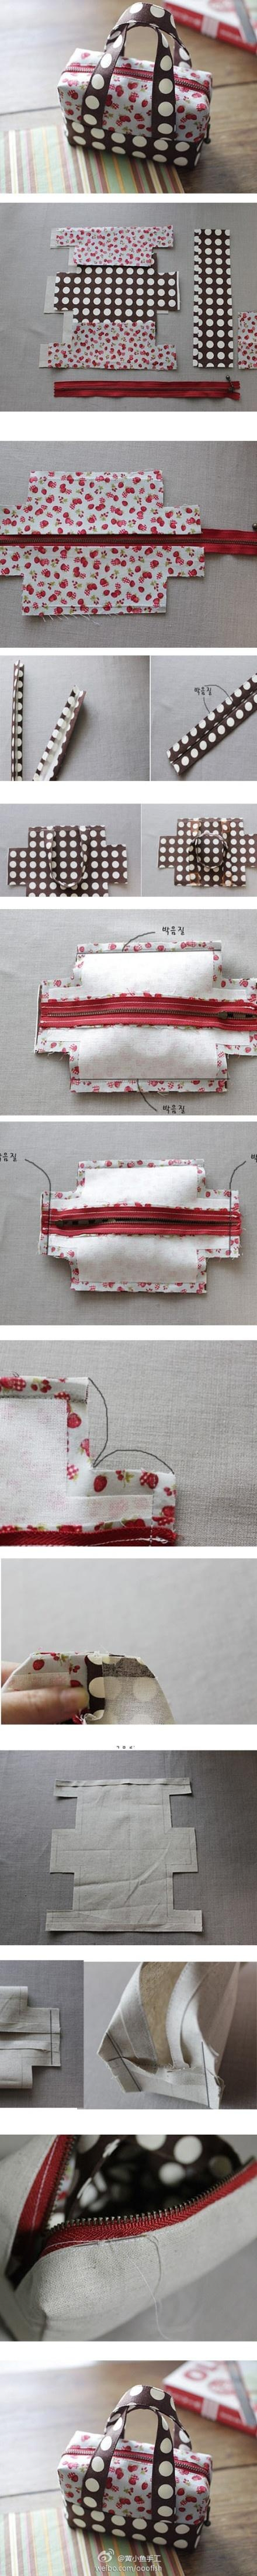 """Cute DIY Bag - very close to the pattern I have, simple to make, very very useful in all sizes. Great for travel, makeup bags, """"in-purse"""" bags, etc. You can even keep your seed packets in them!"""